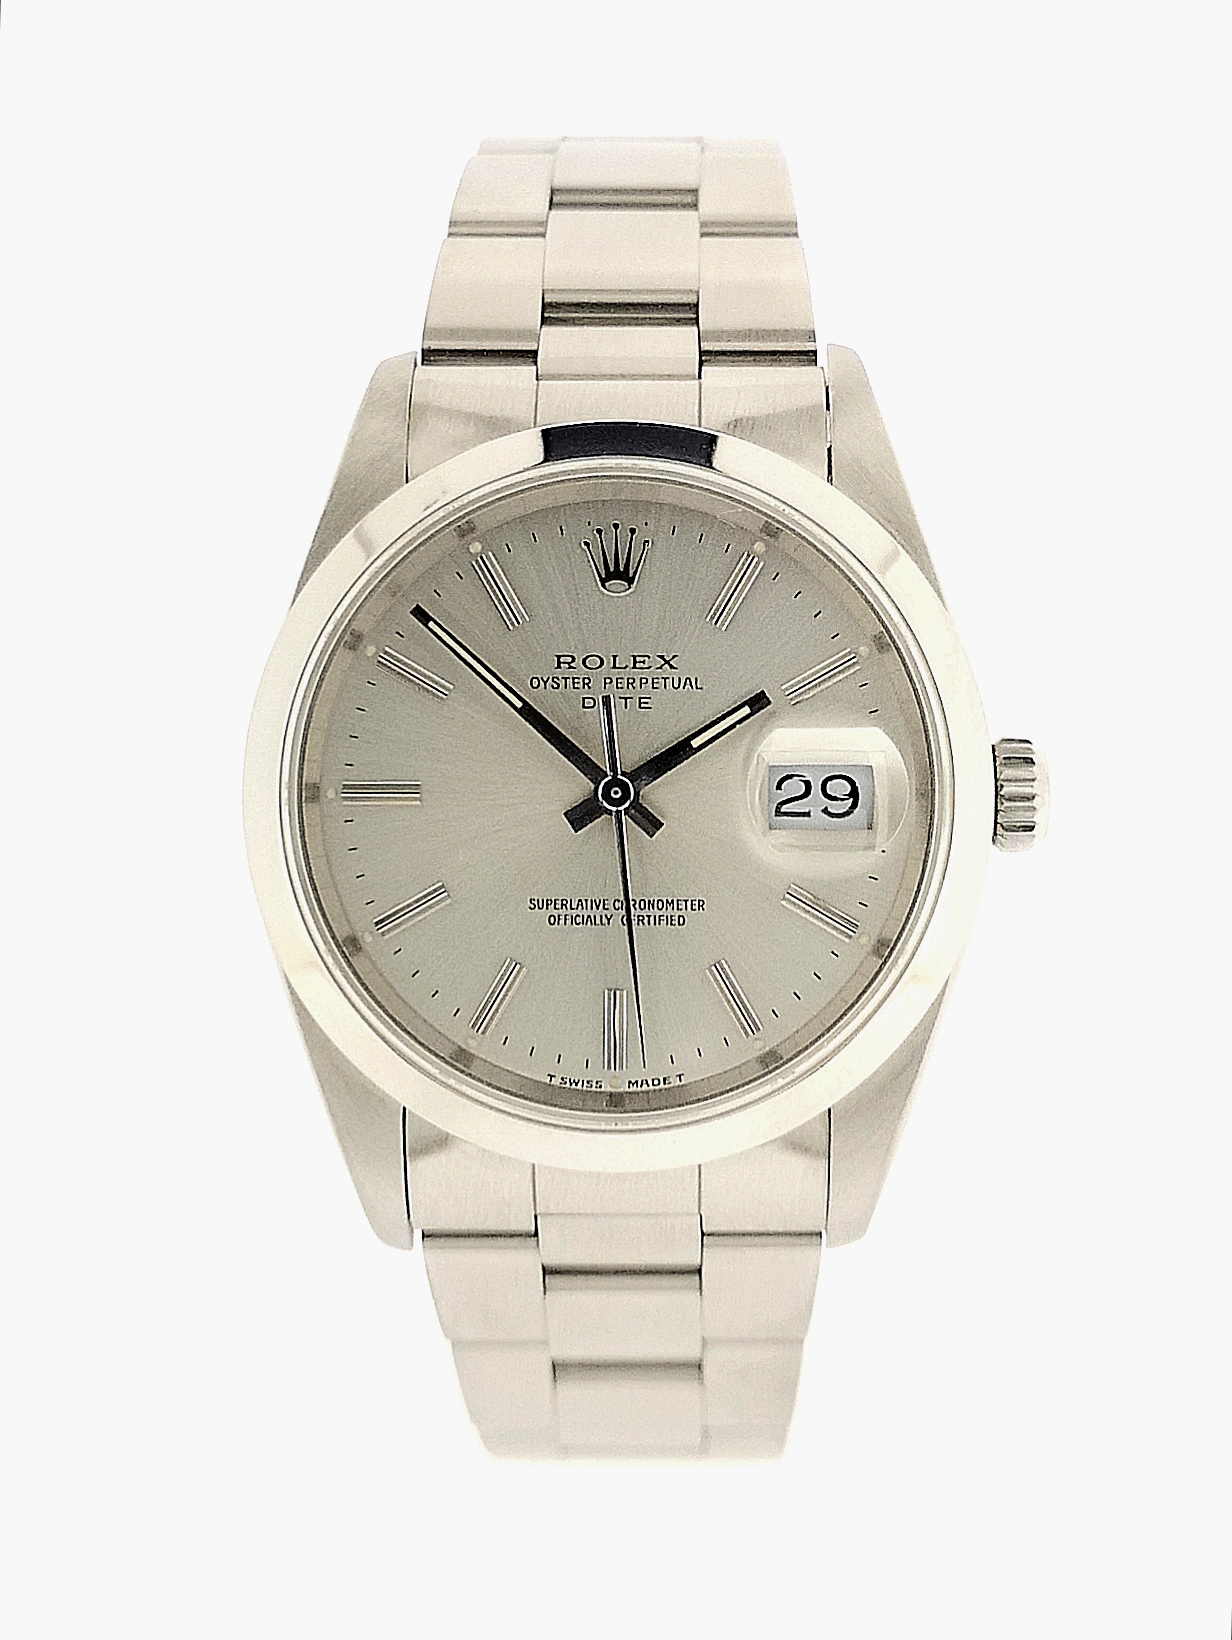 Rolex Oyster Perpetual Date15200 Watch Agency